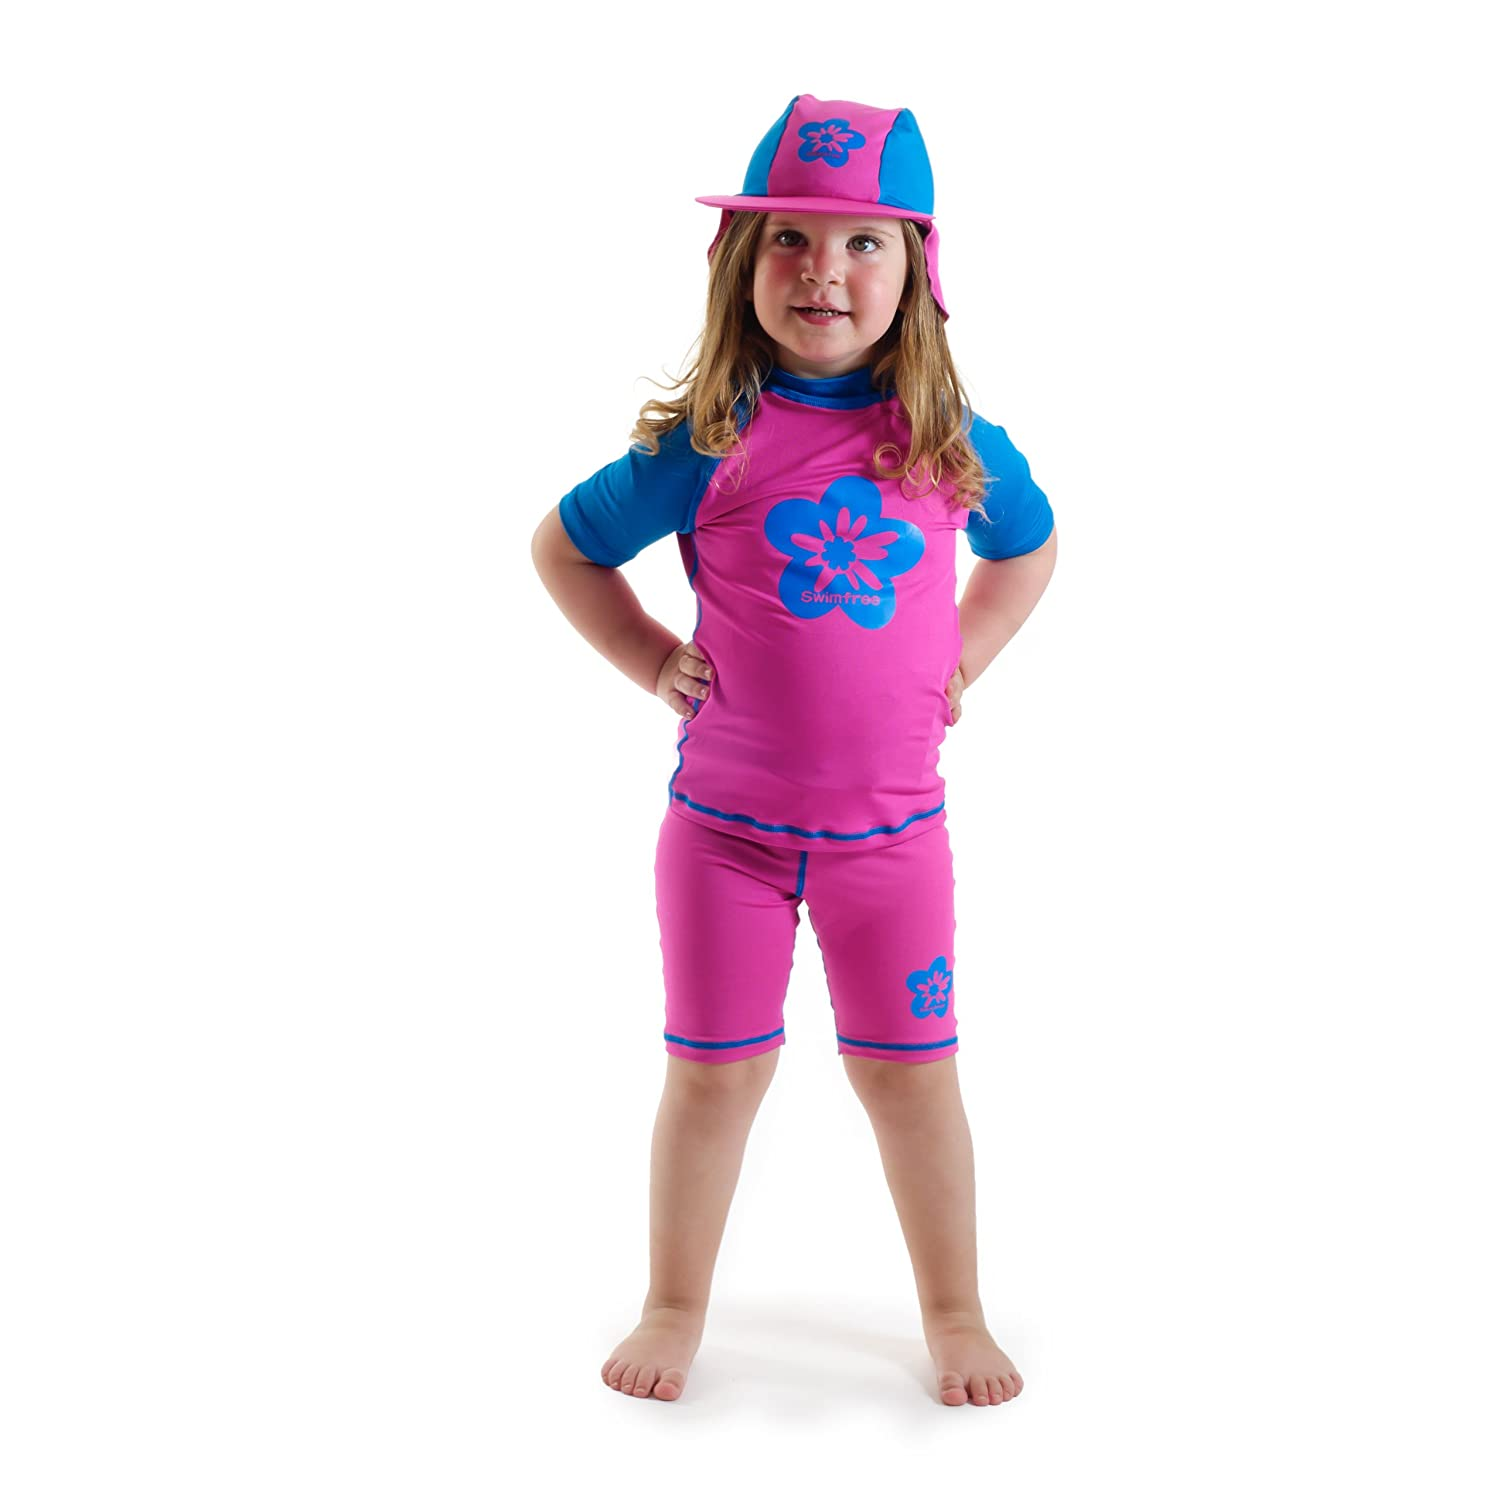 Girls Size 2 Pink/blue Sun Protective Swimsuit Shirt & Pants Age 2 Years Swimfree